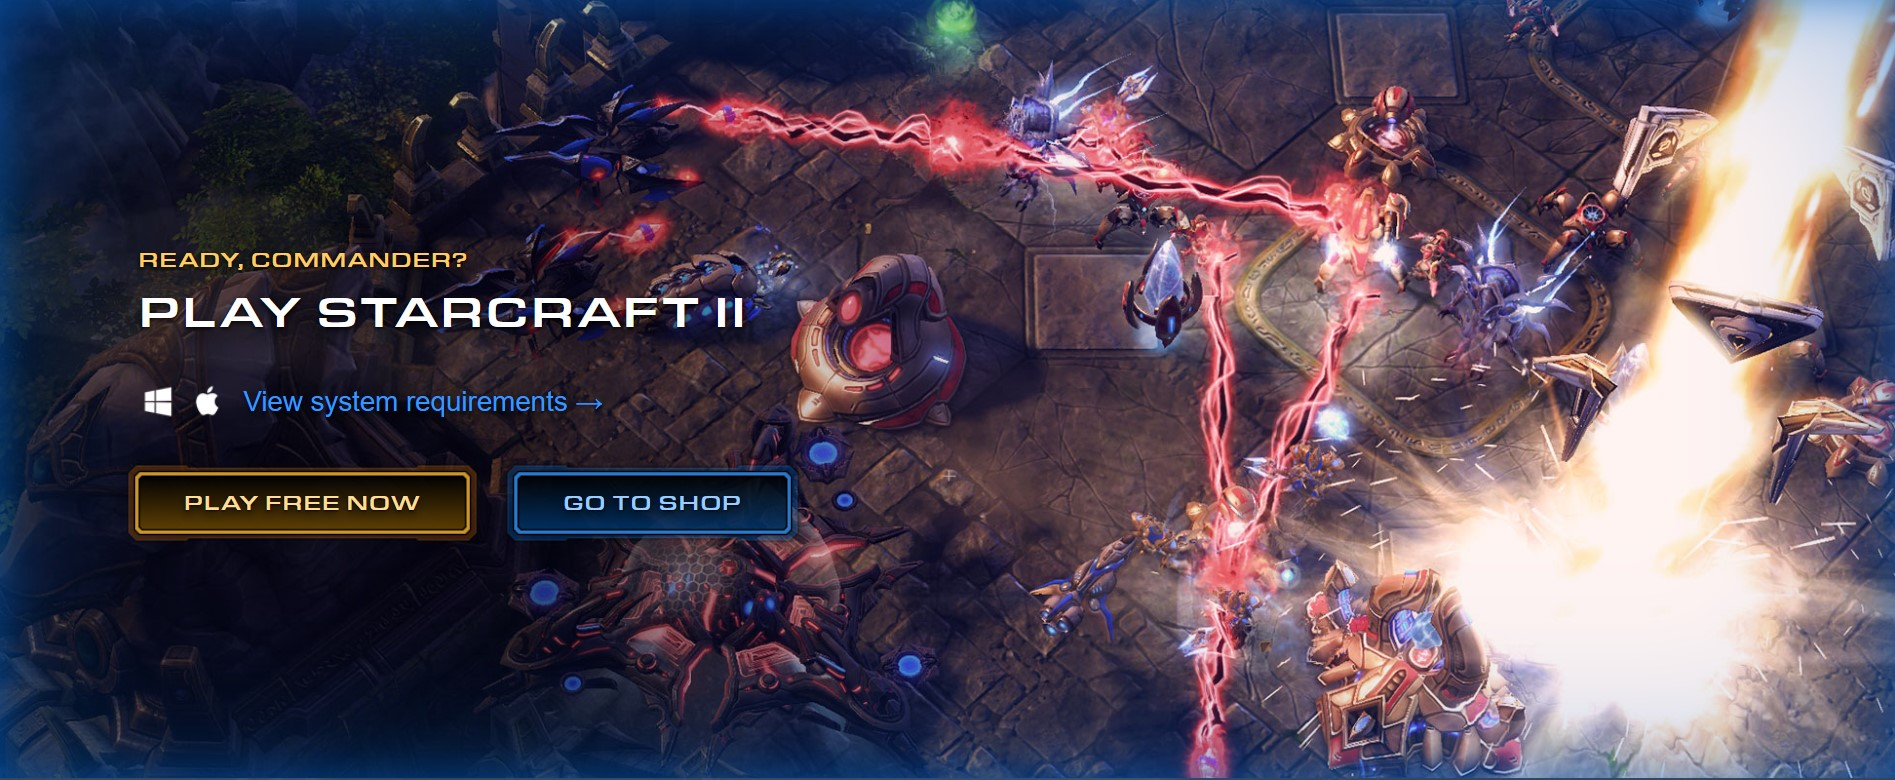 StarCraft Betting Sites